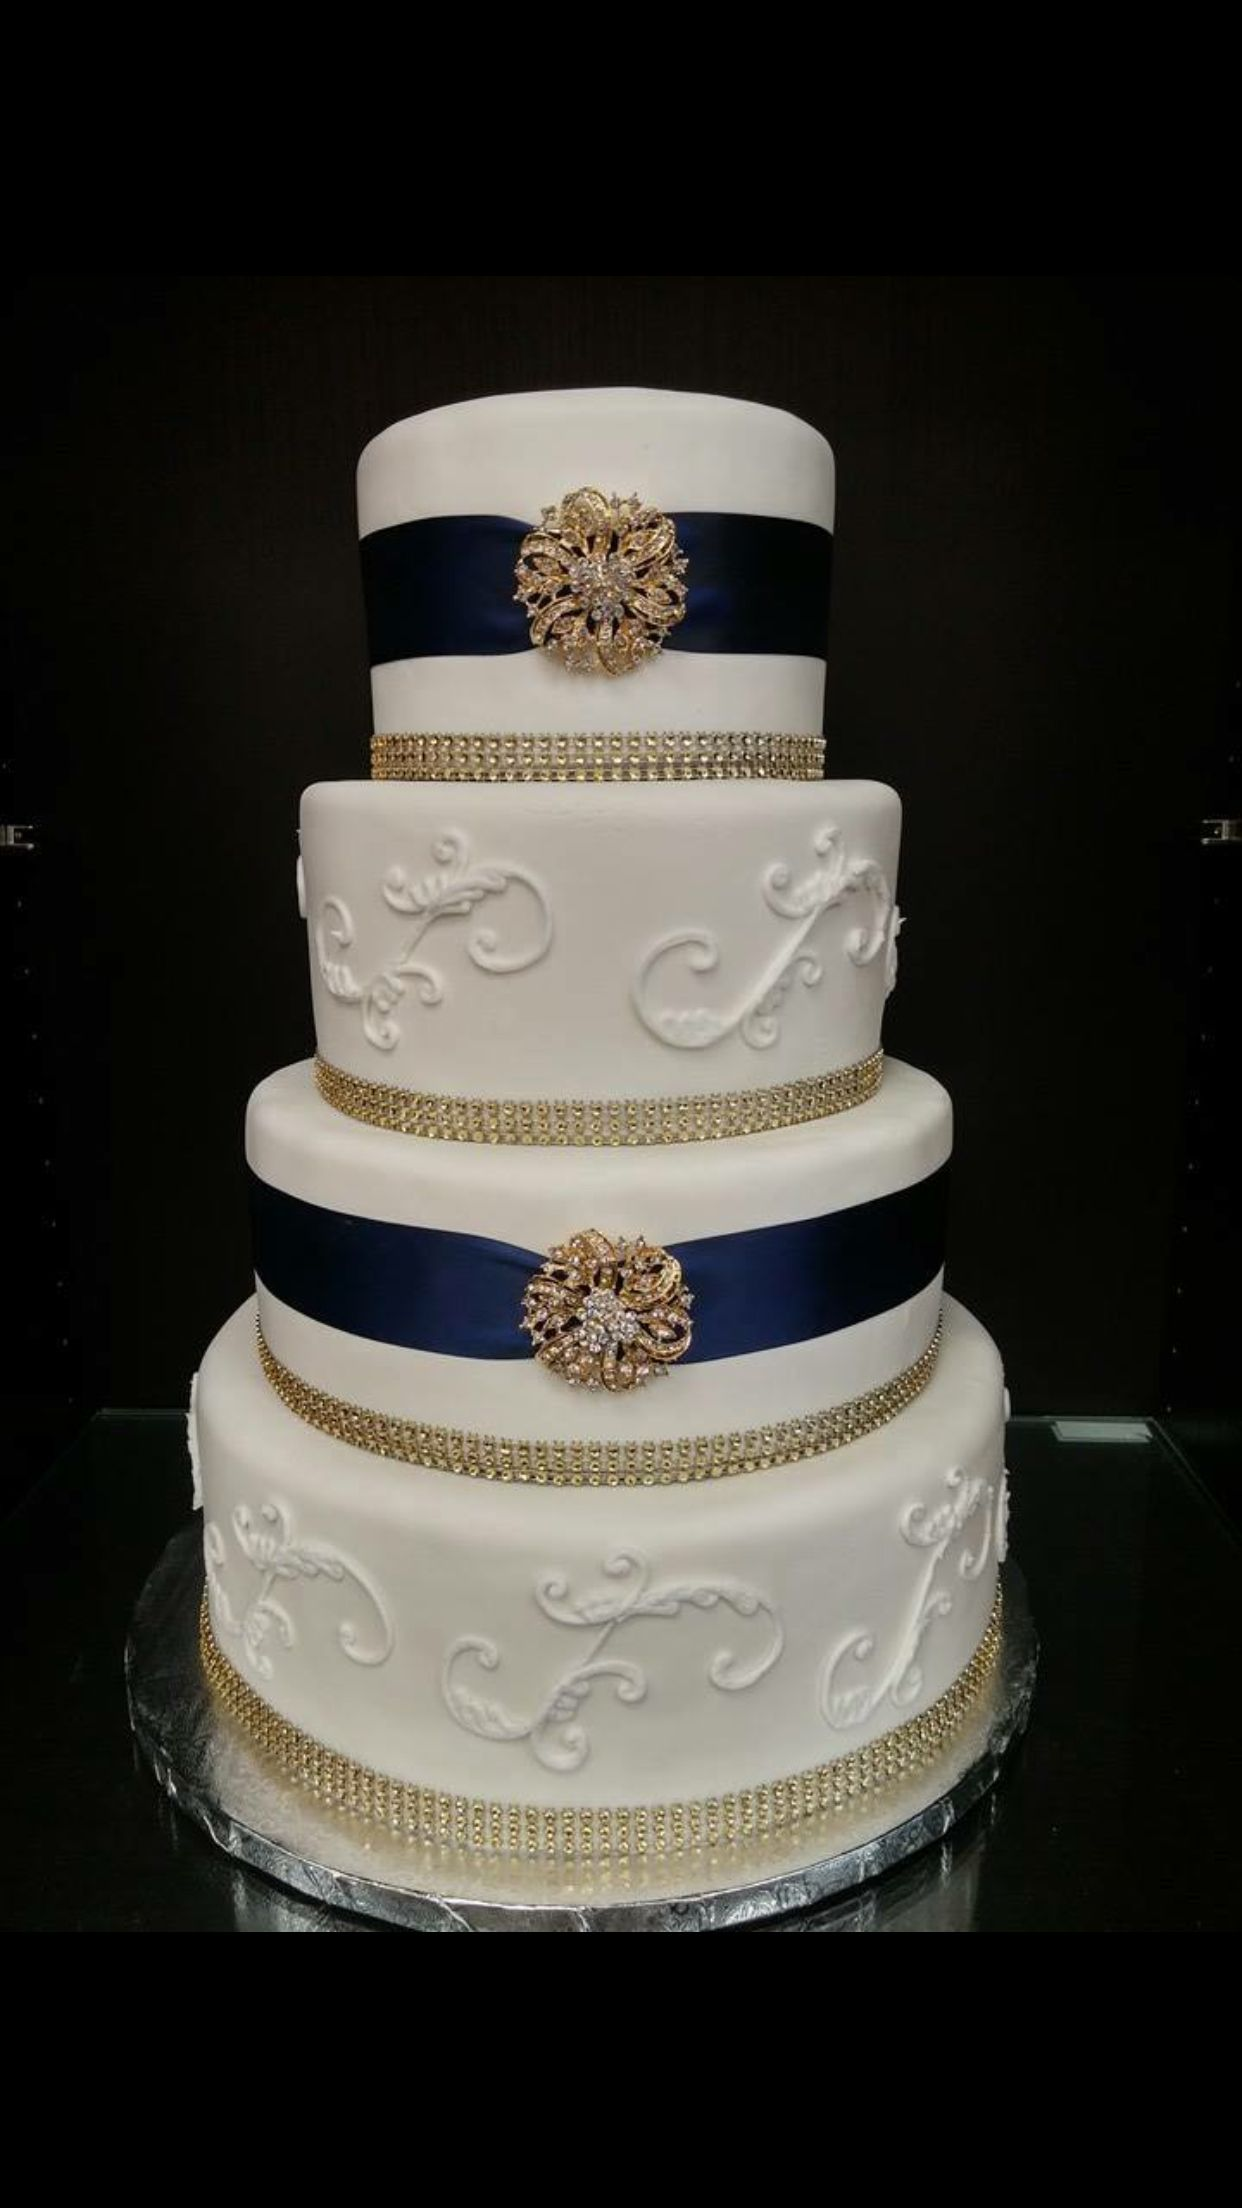 Blue and gold wedding cake wedding cake pictures gold